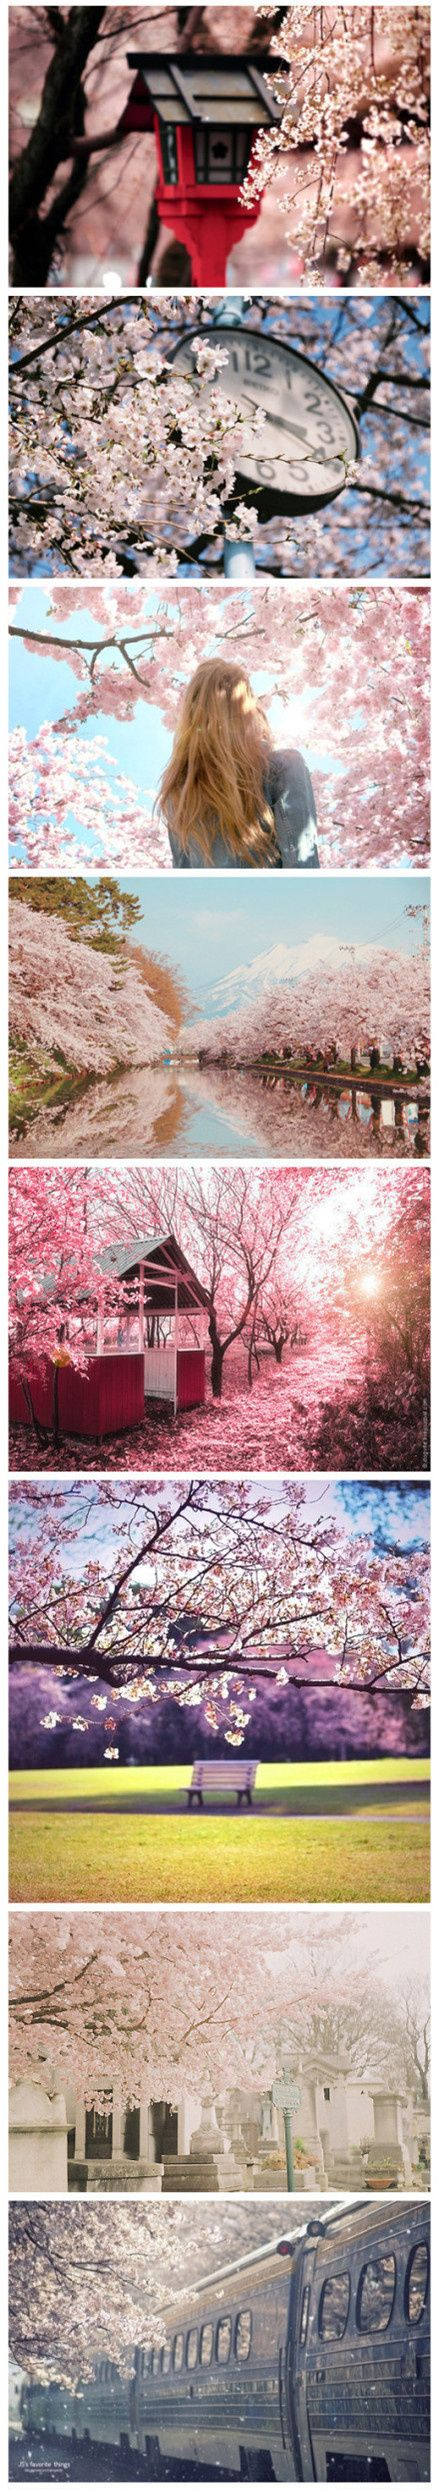 Free Weekly Guided Meditations + Tea Tips at http://www.SipandOm.com. Connect to the seasons by celebrating what is going on in nature. Cherry blossom season is like a national holiday in Japan.